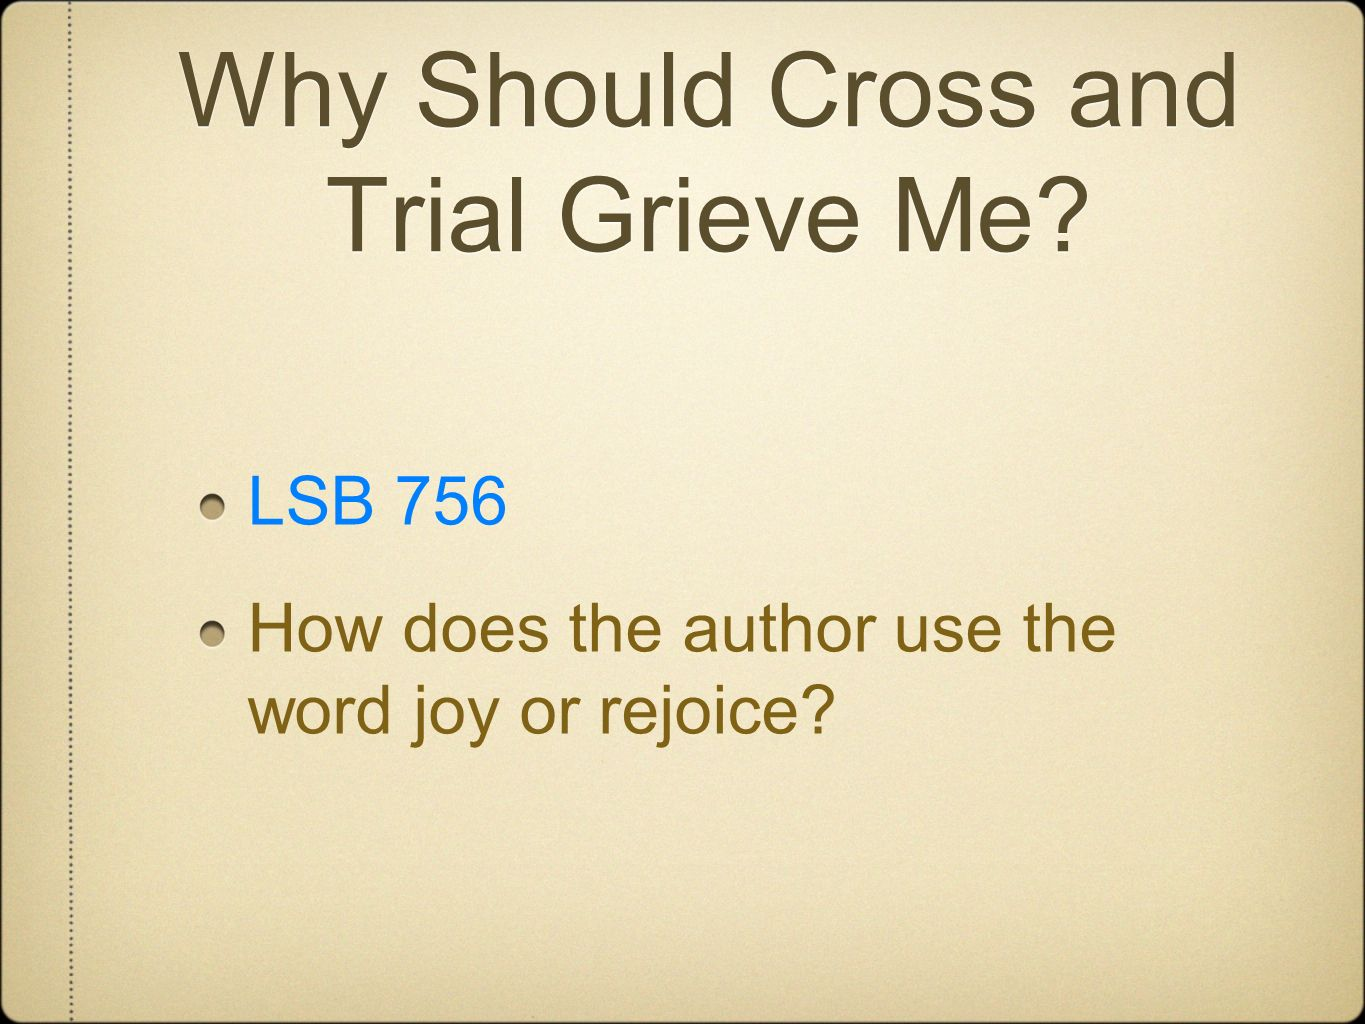 Why Should Cross and Trial Grieve Me